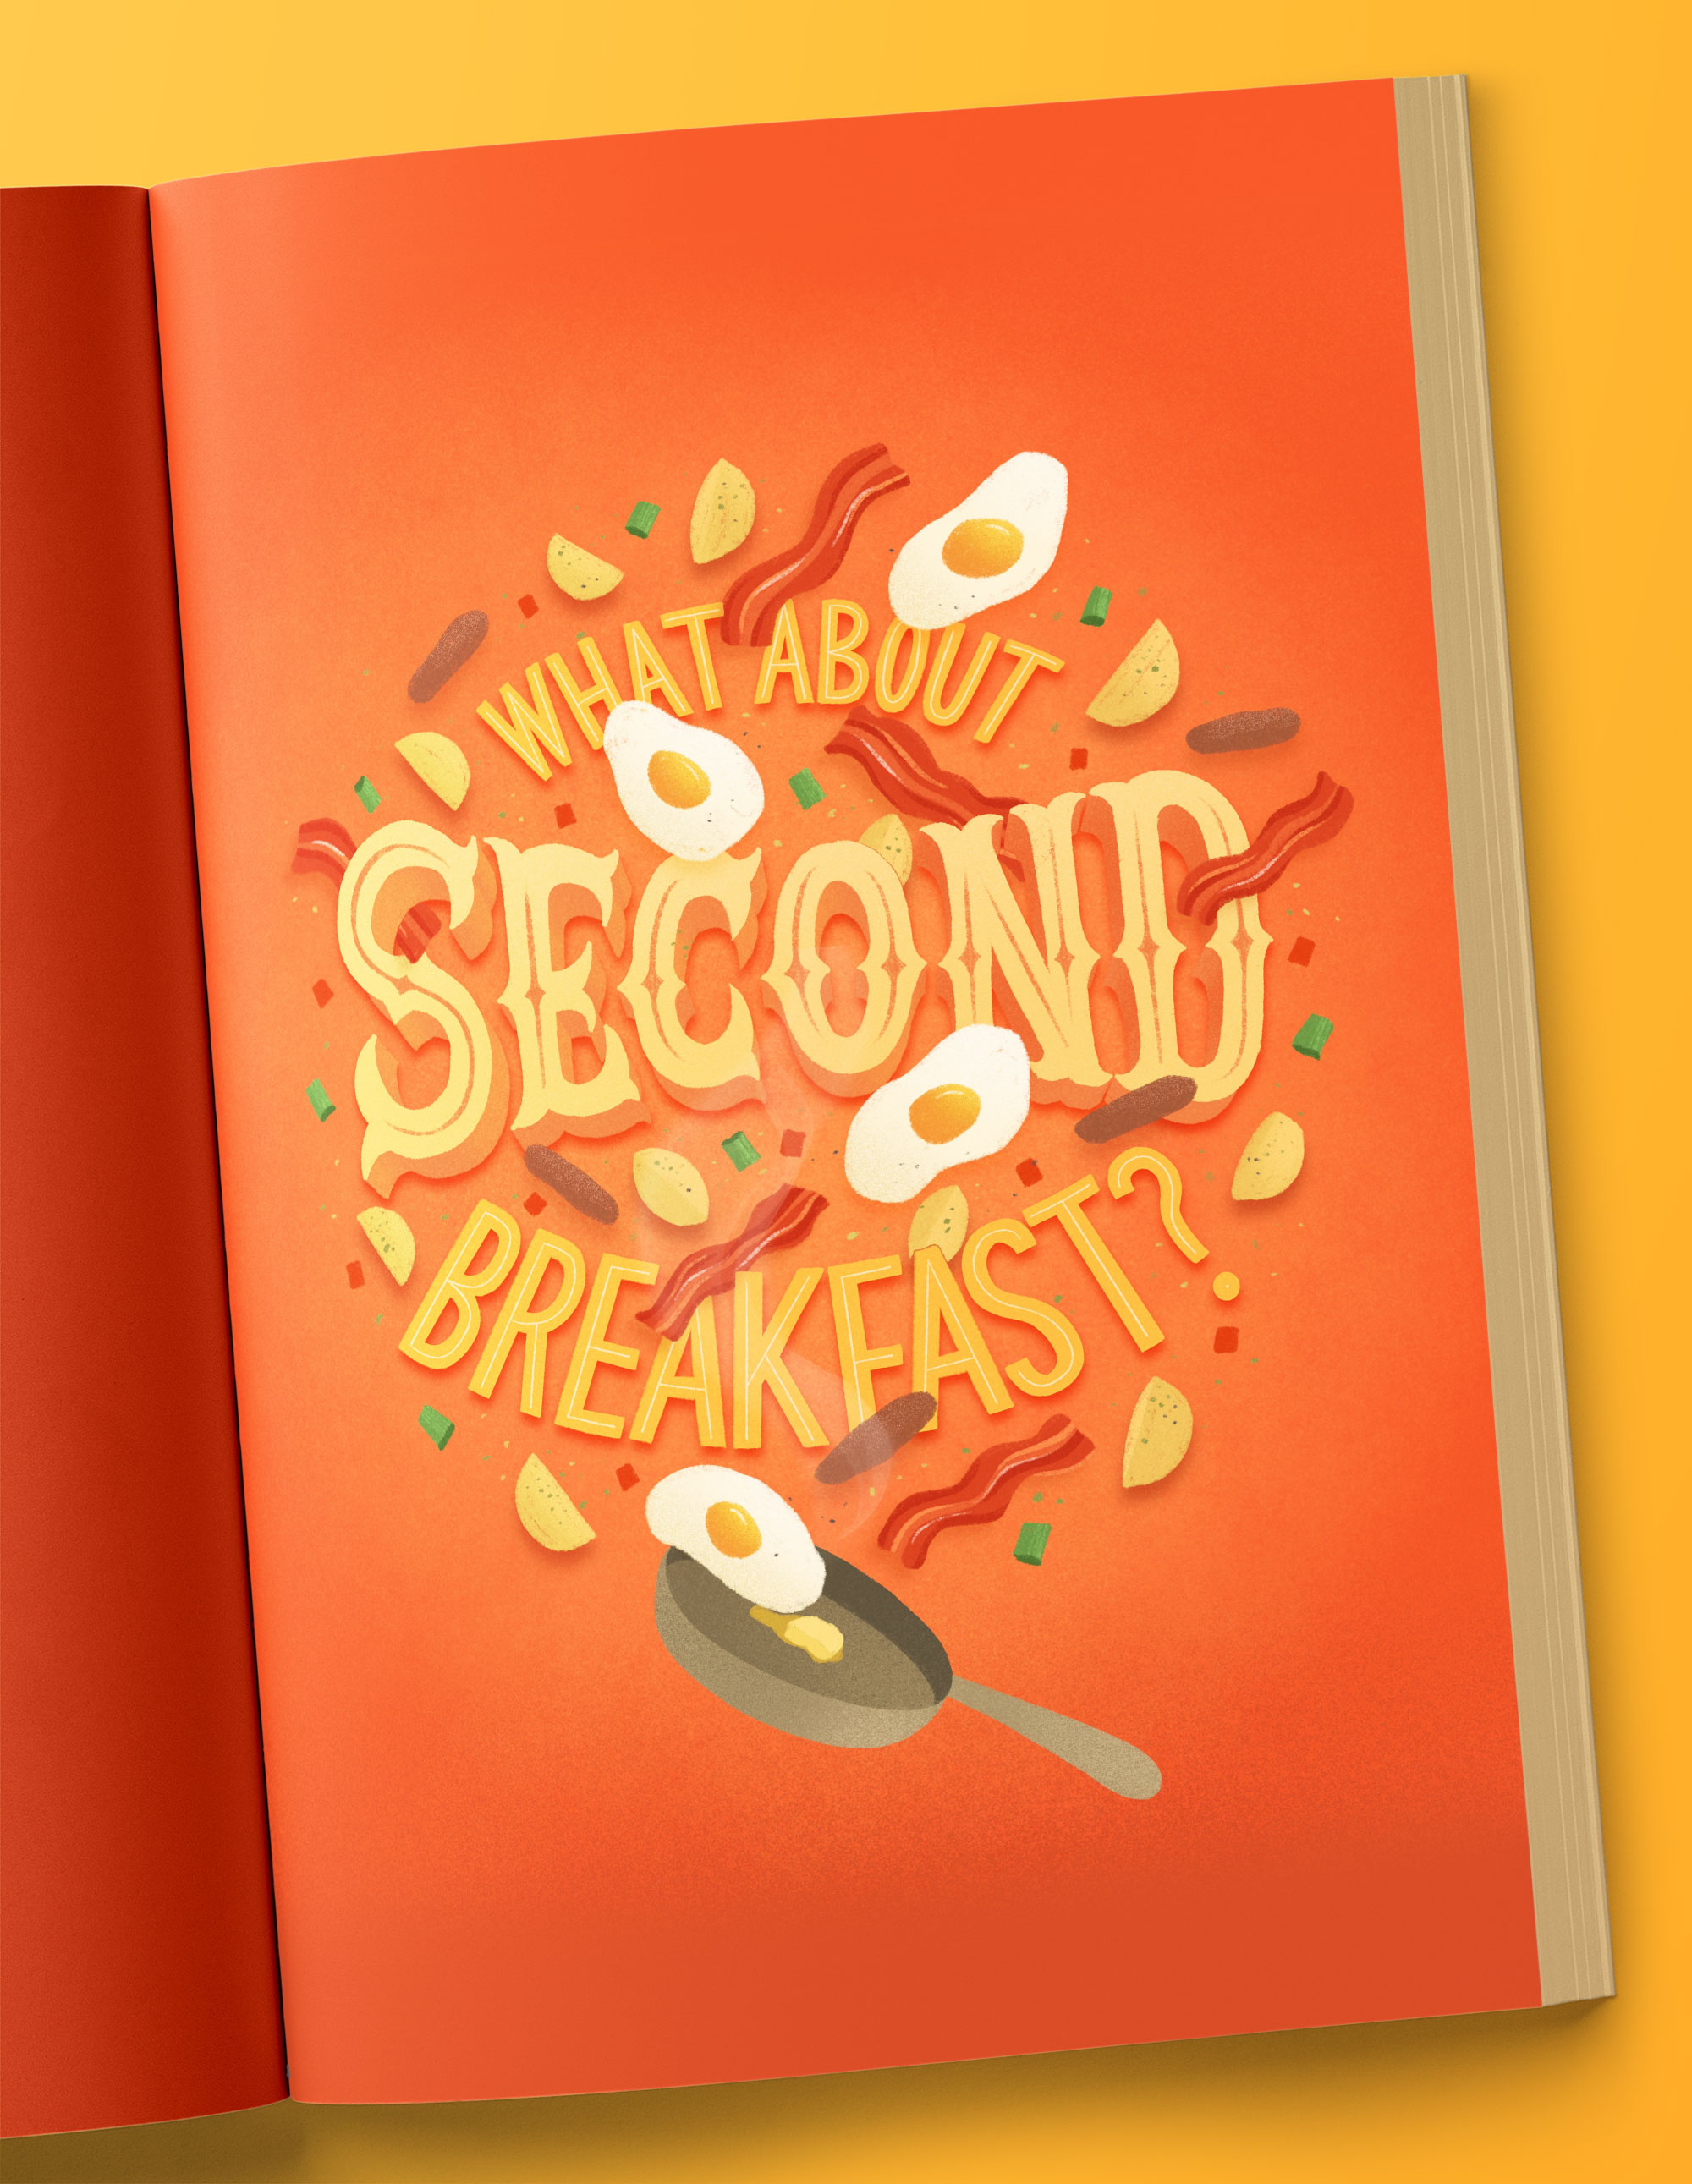 second-breakfast-brunch-hand-lettering-mockup